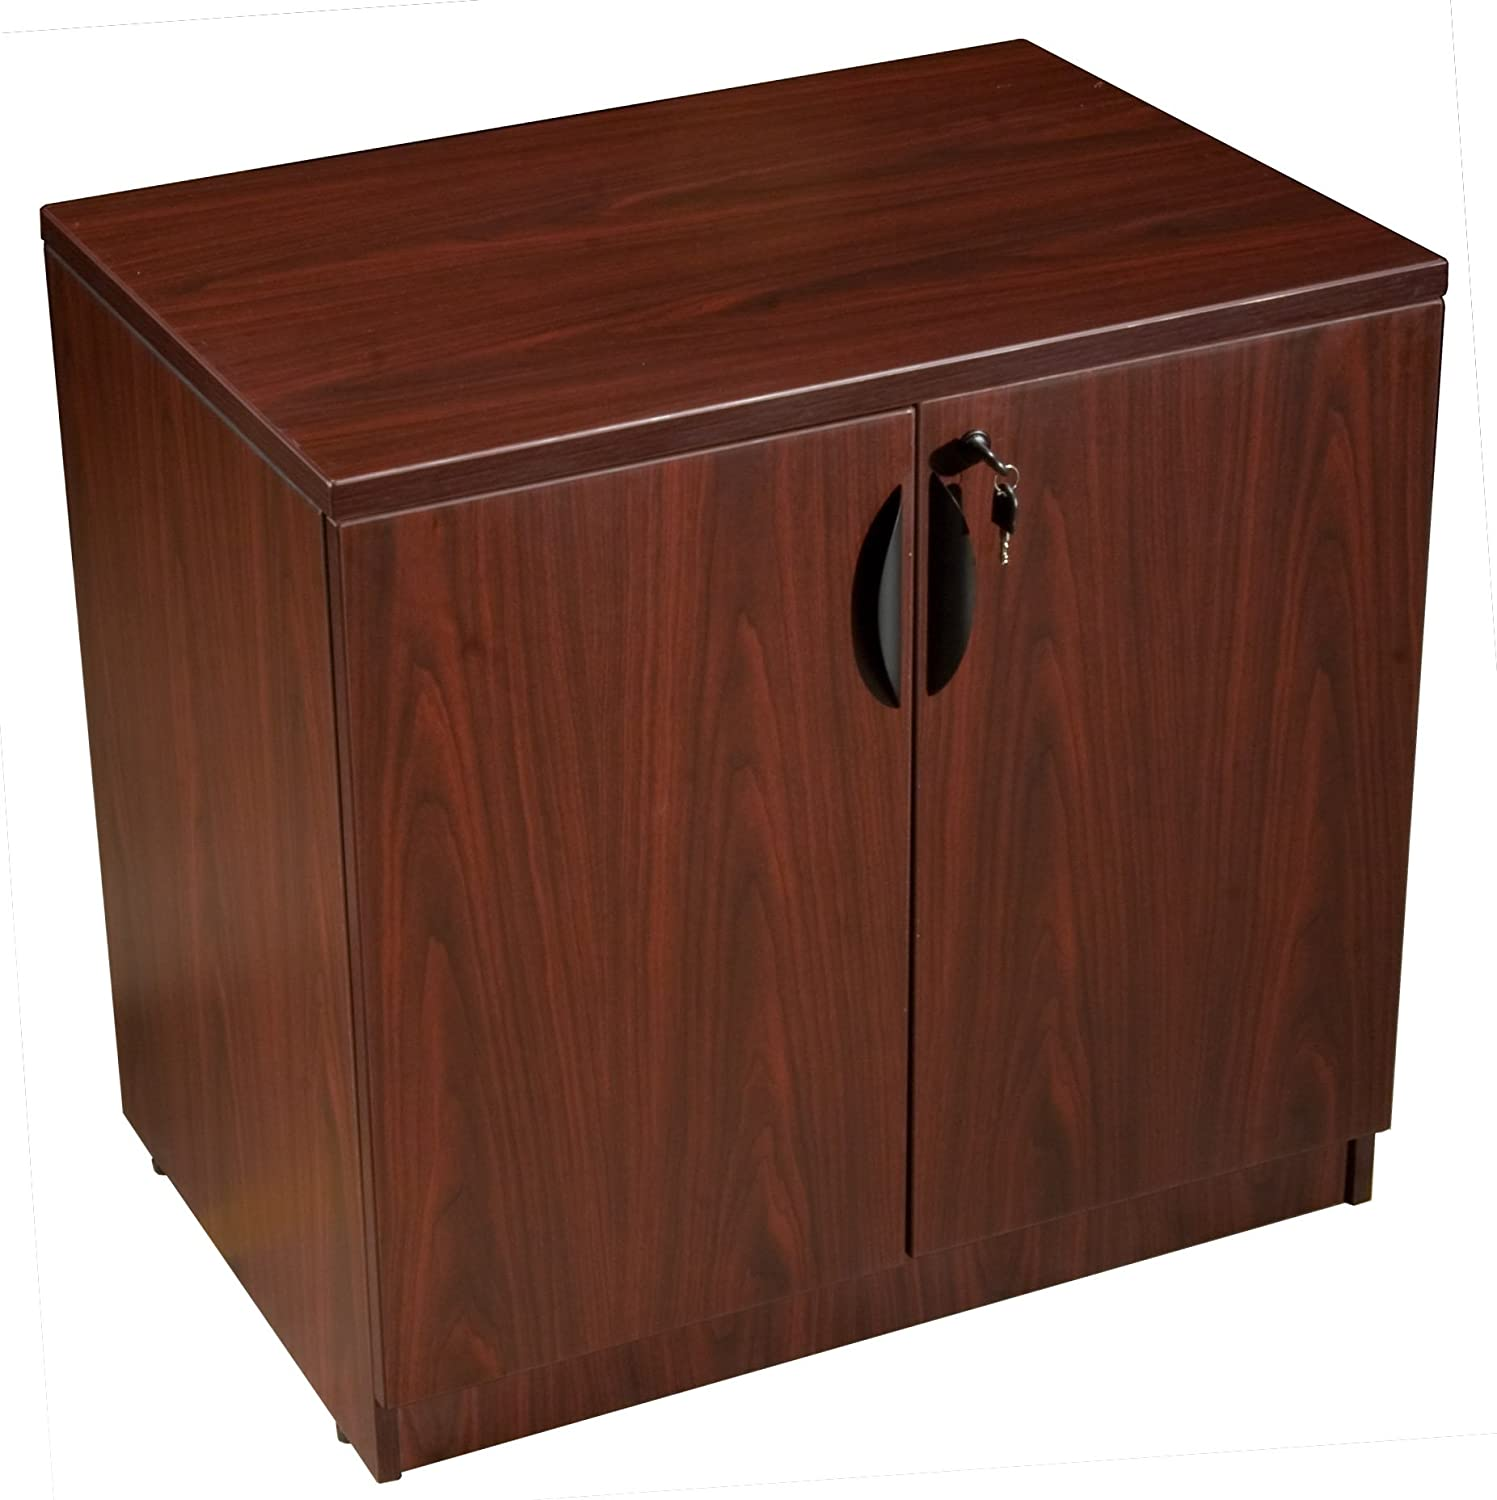 small office cabinet. Amazon.com: Boss Office Products Storage Cabinet, Mahogany: Kitchen \u0026 Dining Small Cabinet A